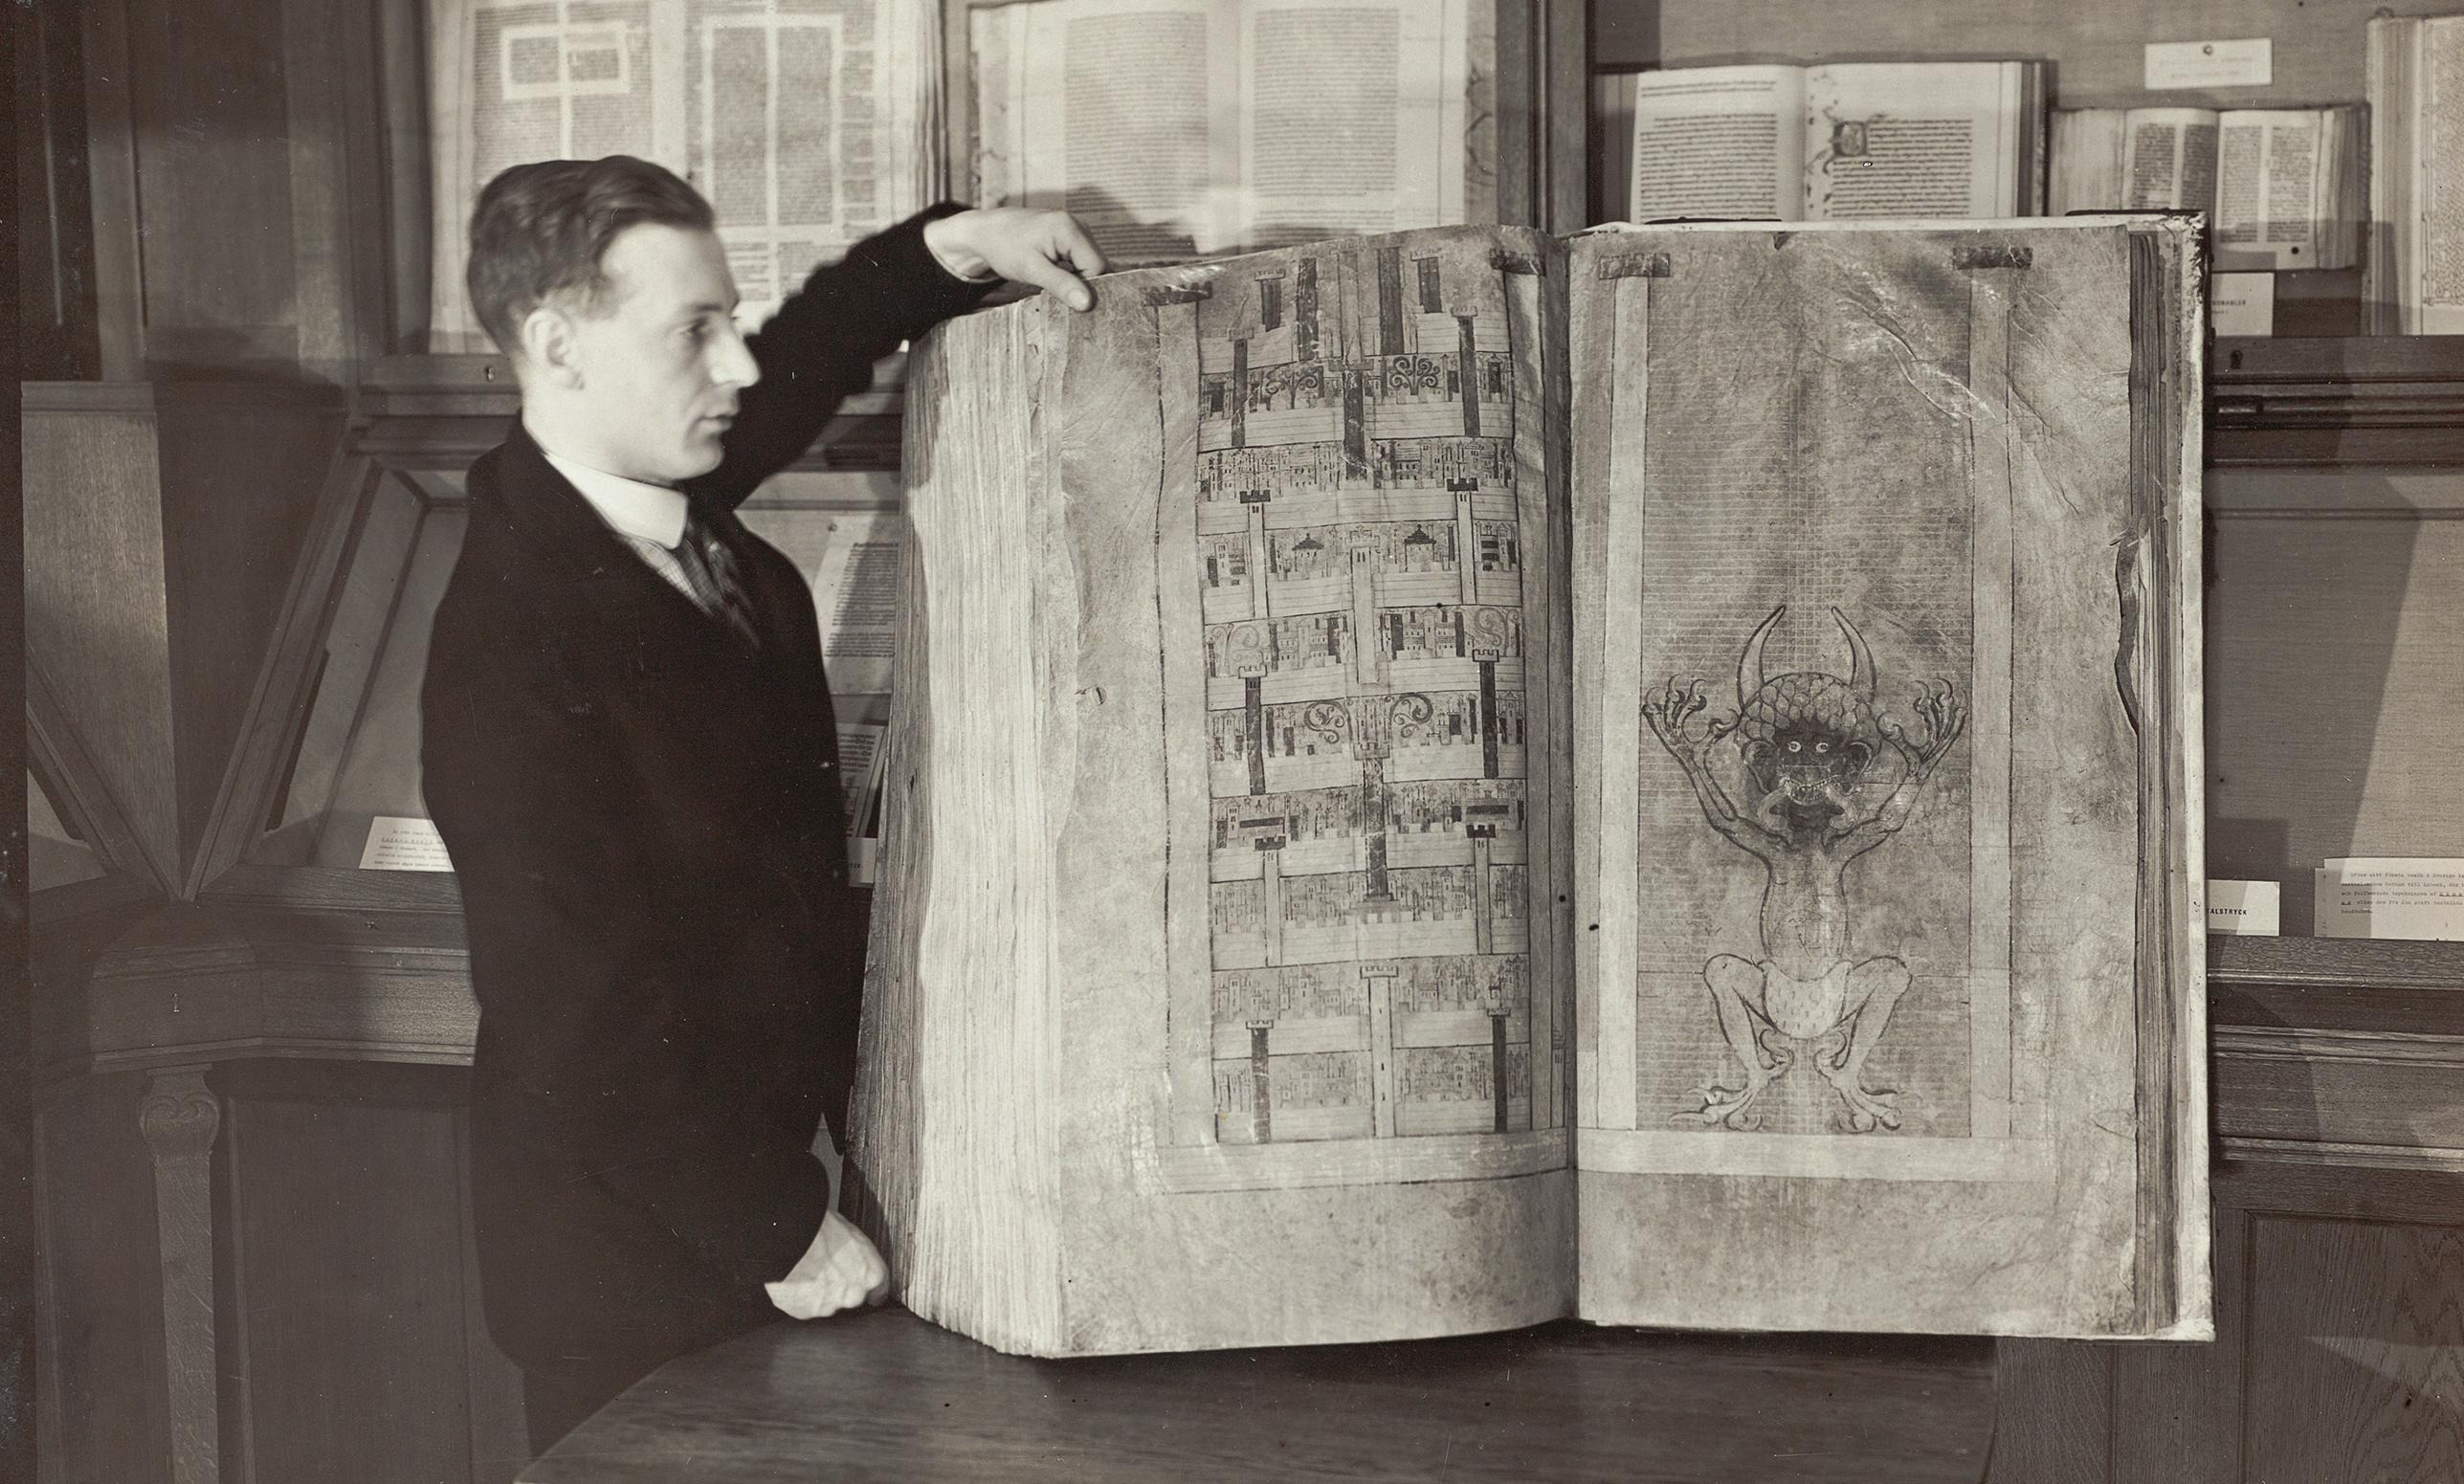 A black and white photo of a man showing a giant book.